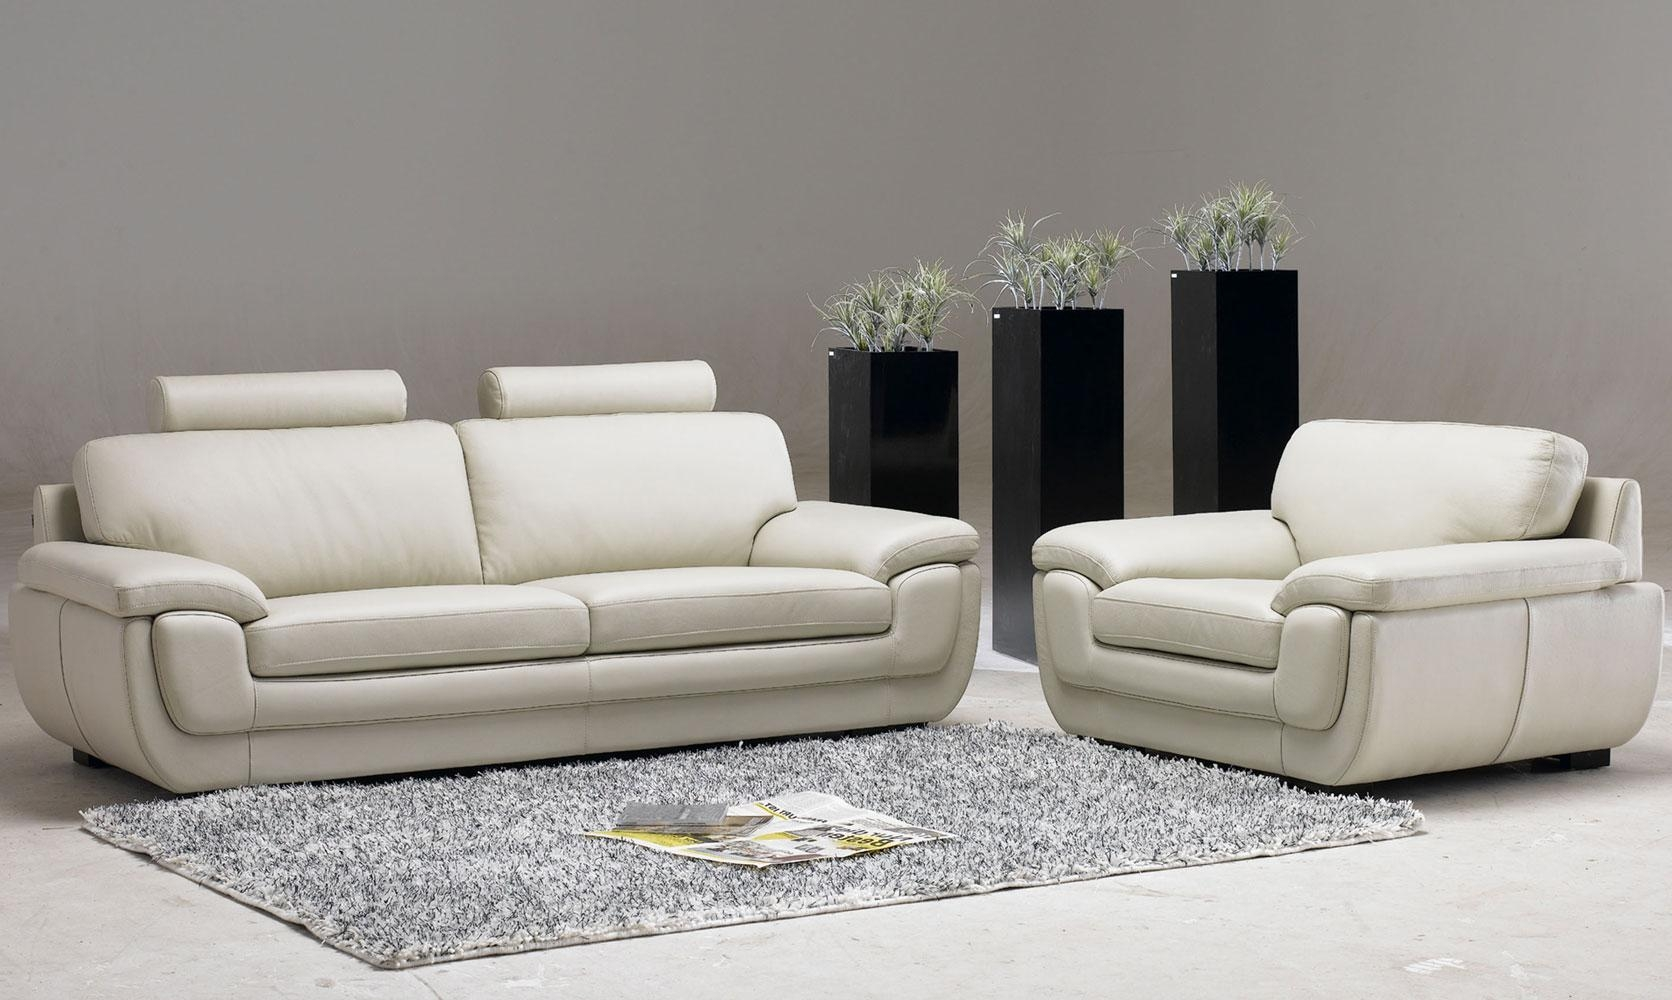 White Leather Living Room Chair White Living Room Furniture Sets With Regard To Living Room Sofa And Chair Sets (Image 20 of 20)